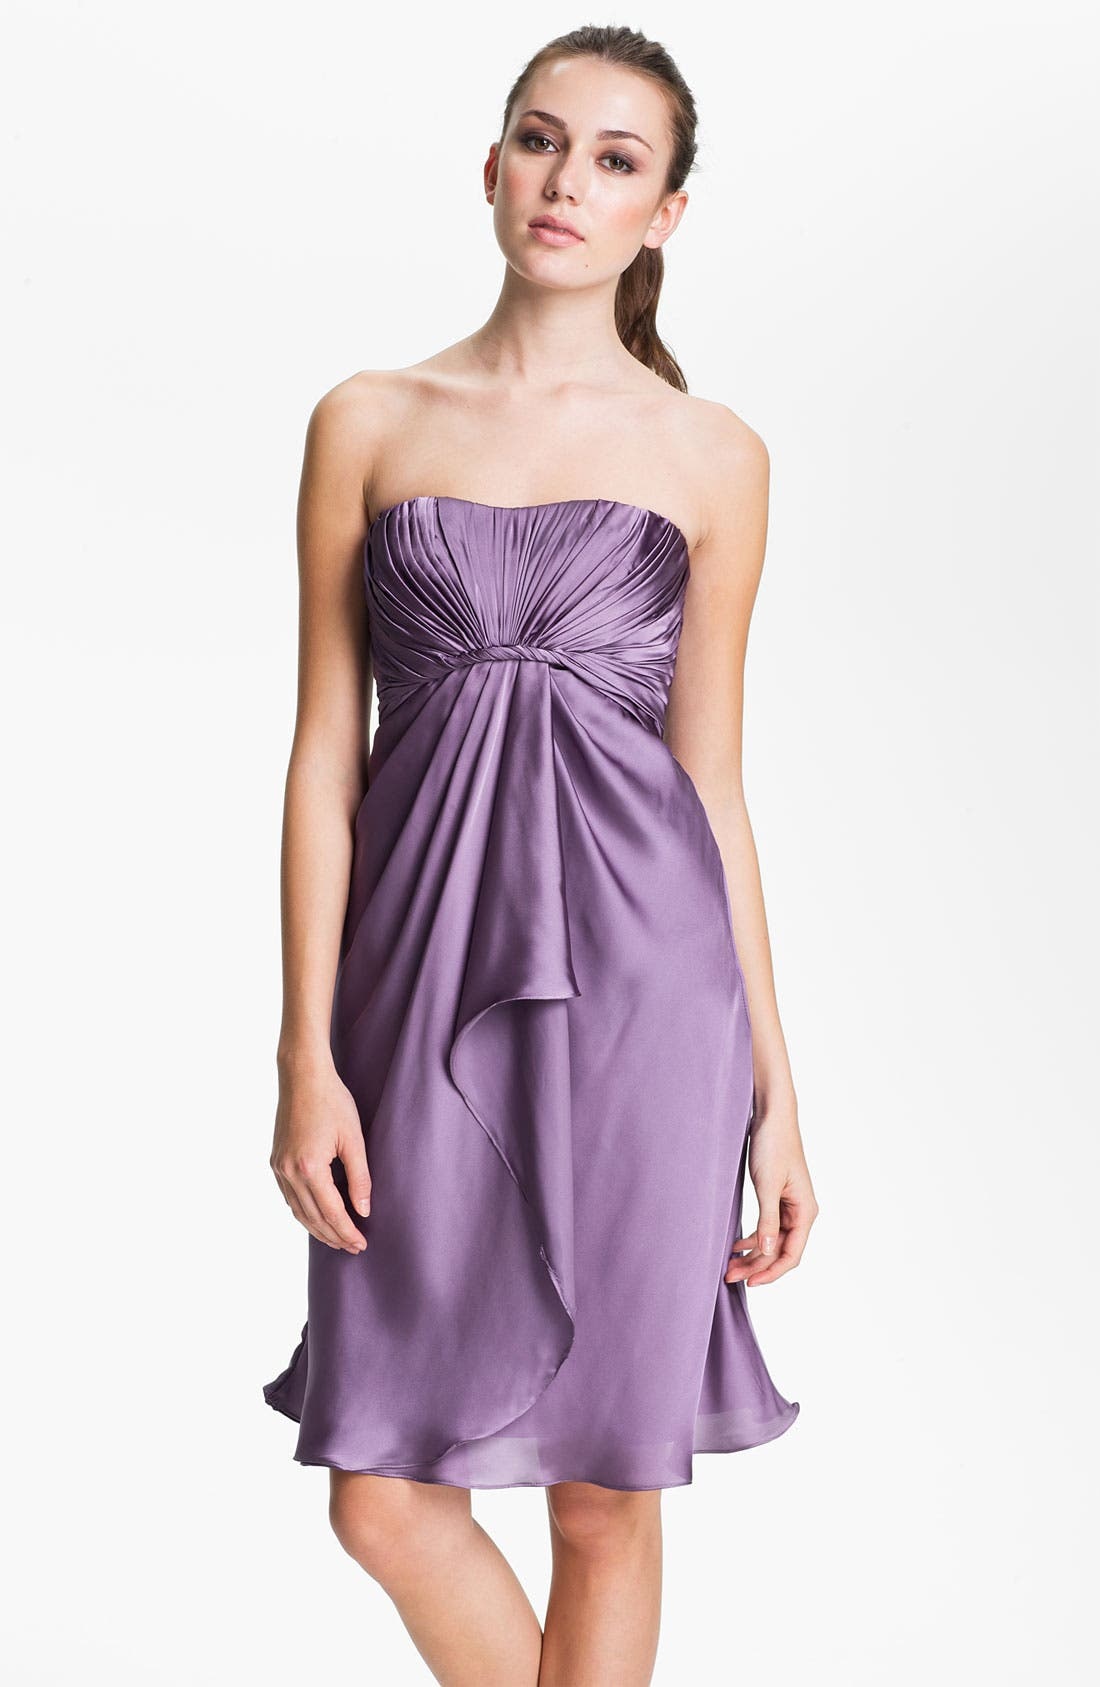 Alternate Image 1 Selected - ML Monique Lhuillier Bridesmaids Strapless Drape Detail Charmeuse Dress (Nordstrom Exclusive)